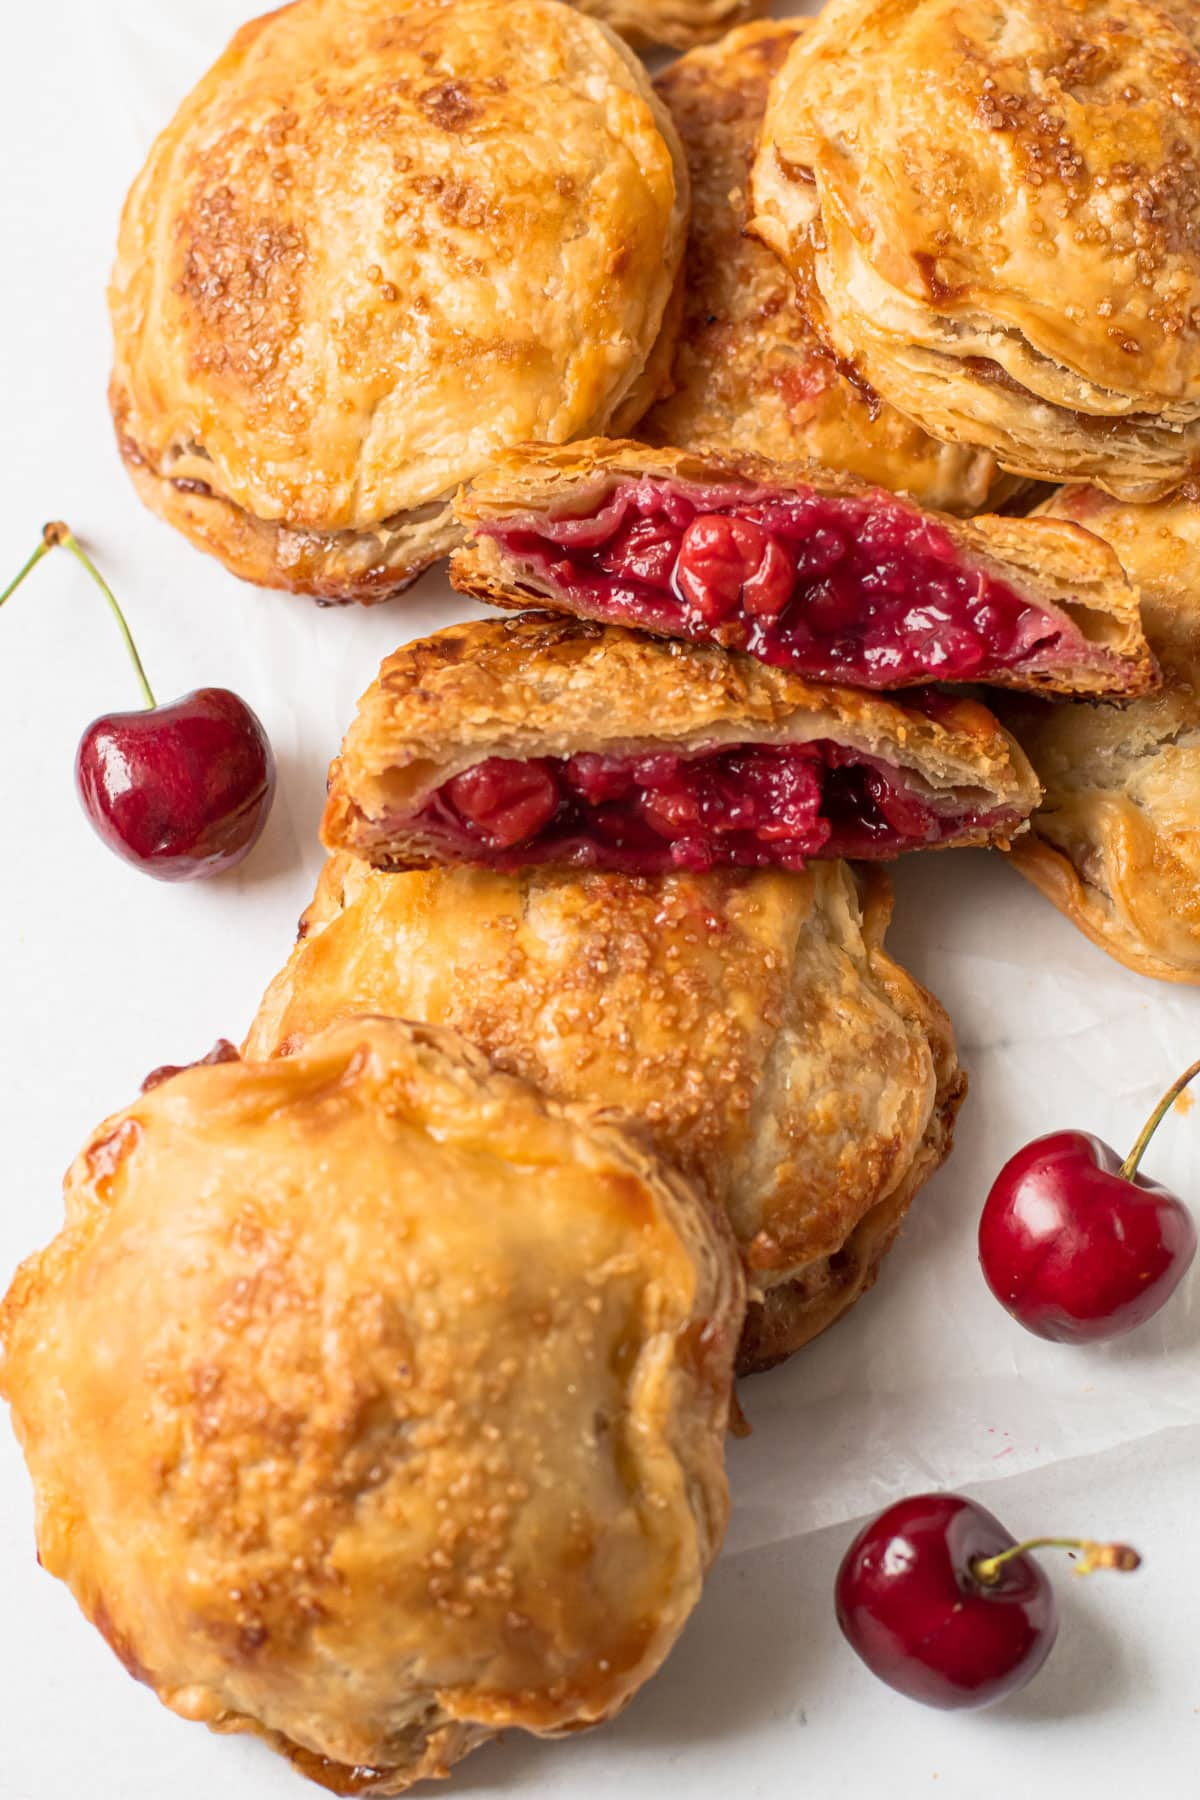 A pile of cherry hand pies with one broken open to reveal the cherry filling.